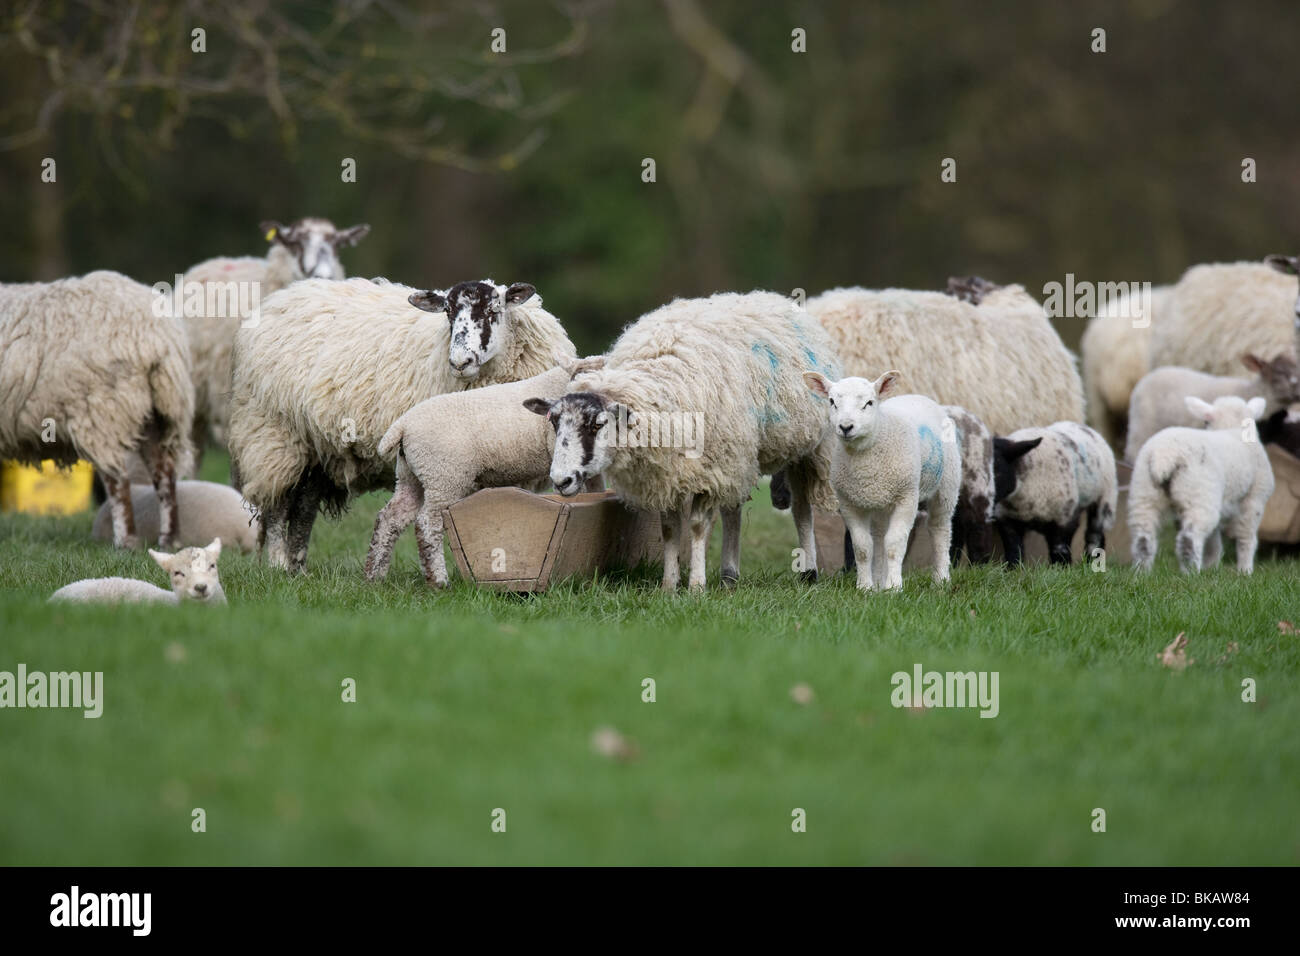 Ewe and lambs - Stock Image